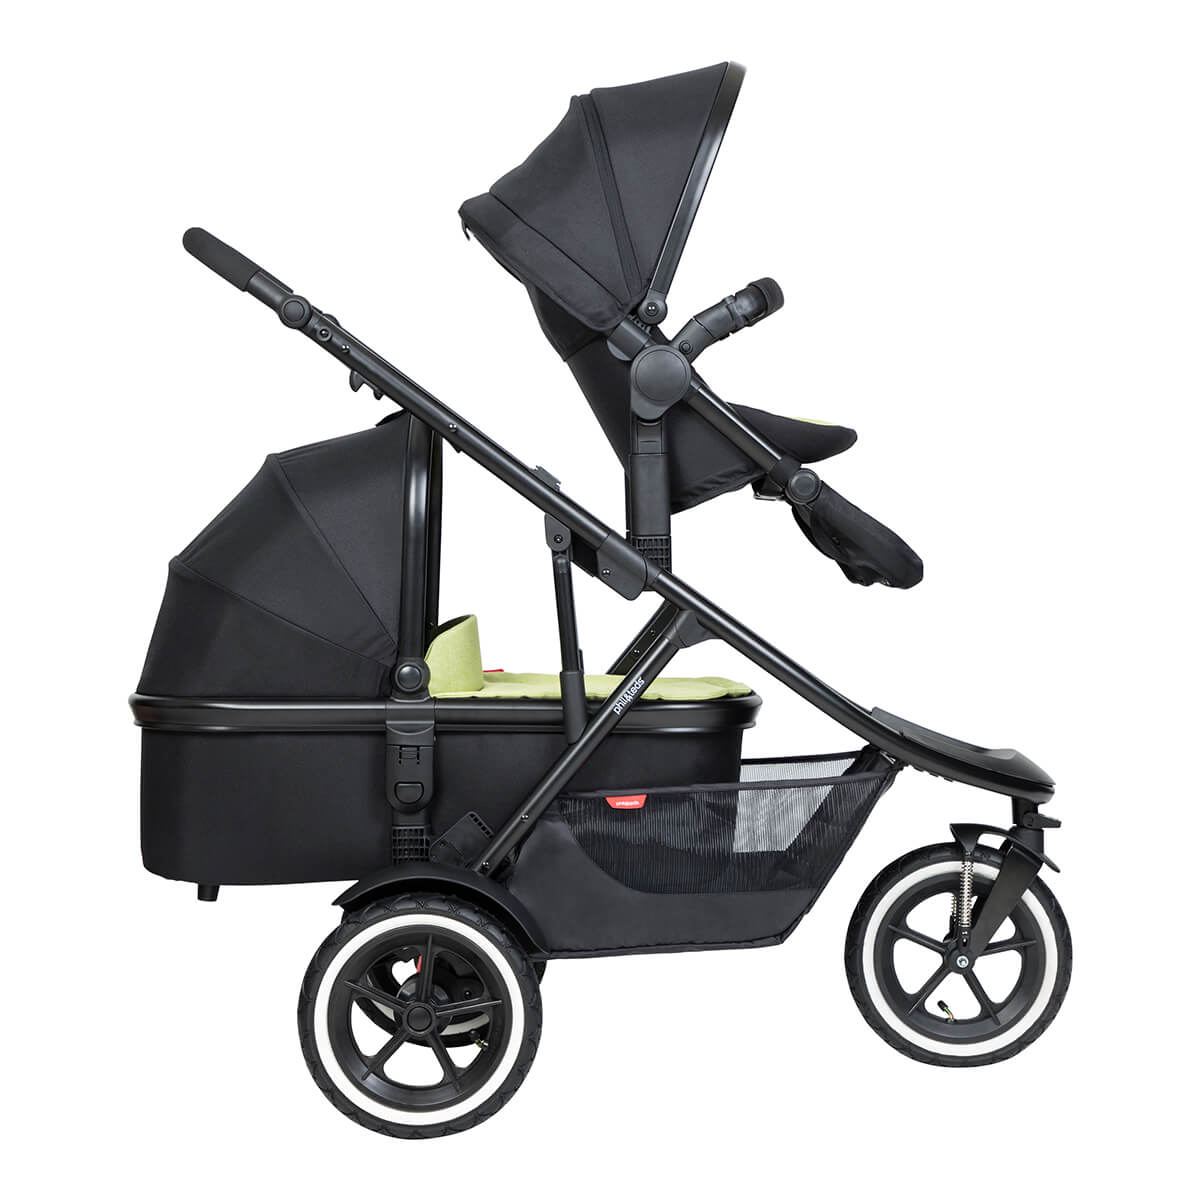 https://cdn.accentuate.io/4546157314153/19119322726505/philteds-sport-buggy-with-double-kit-extended-clip-and-snug-carrycot-side-view-v1625778162193.jpg?1200x1200